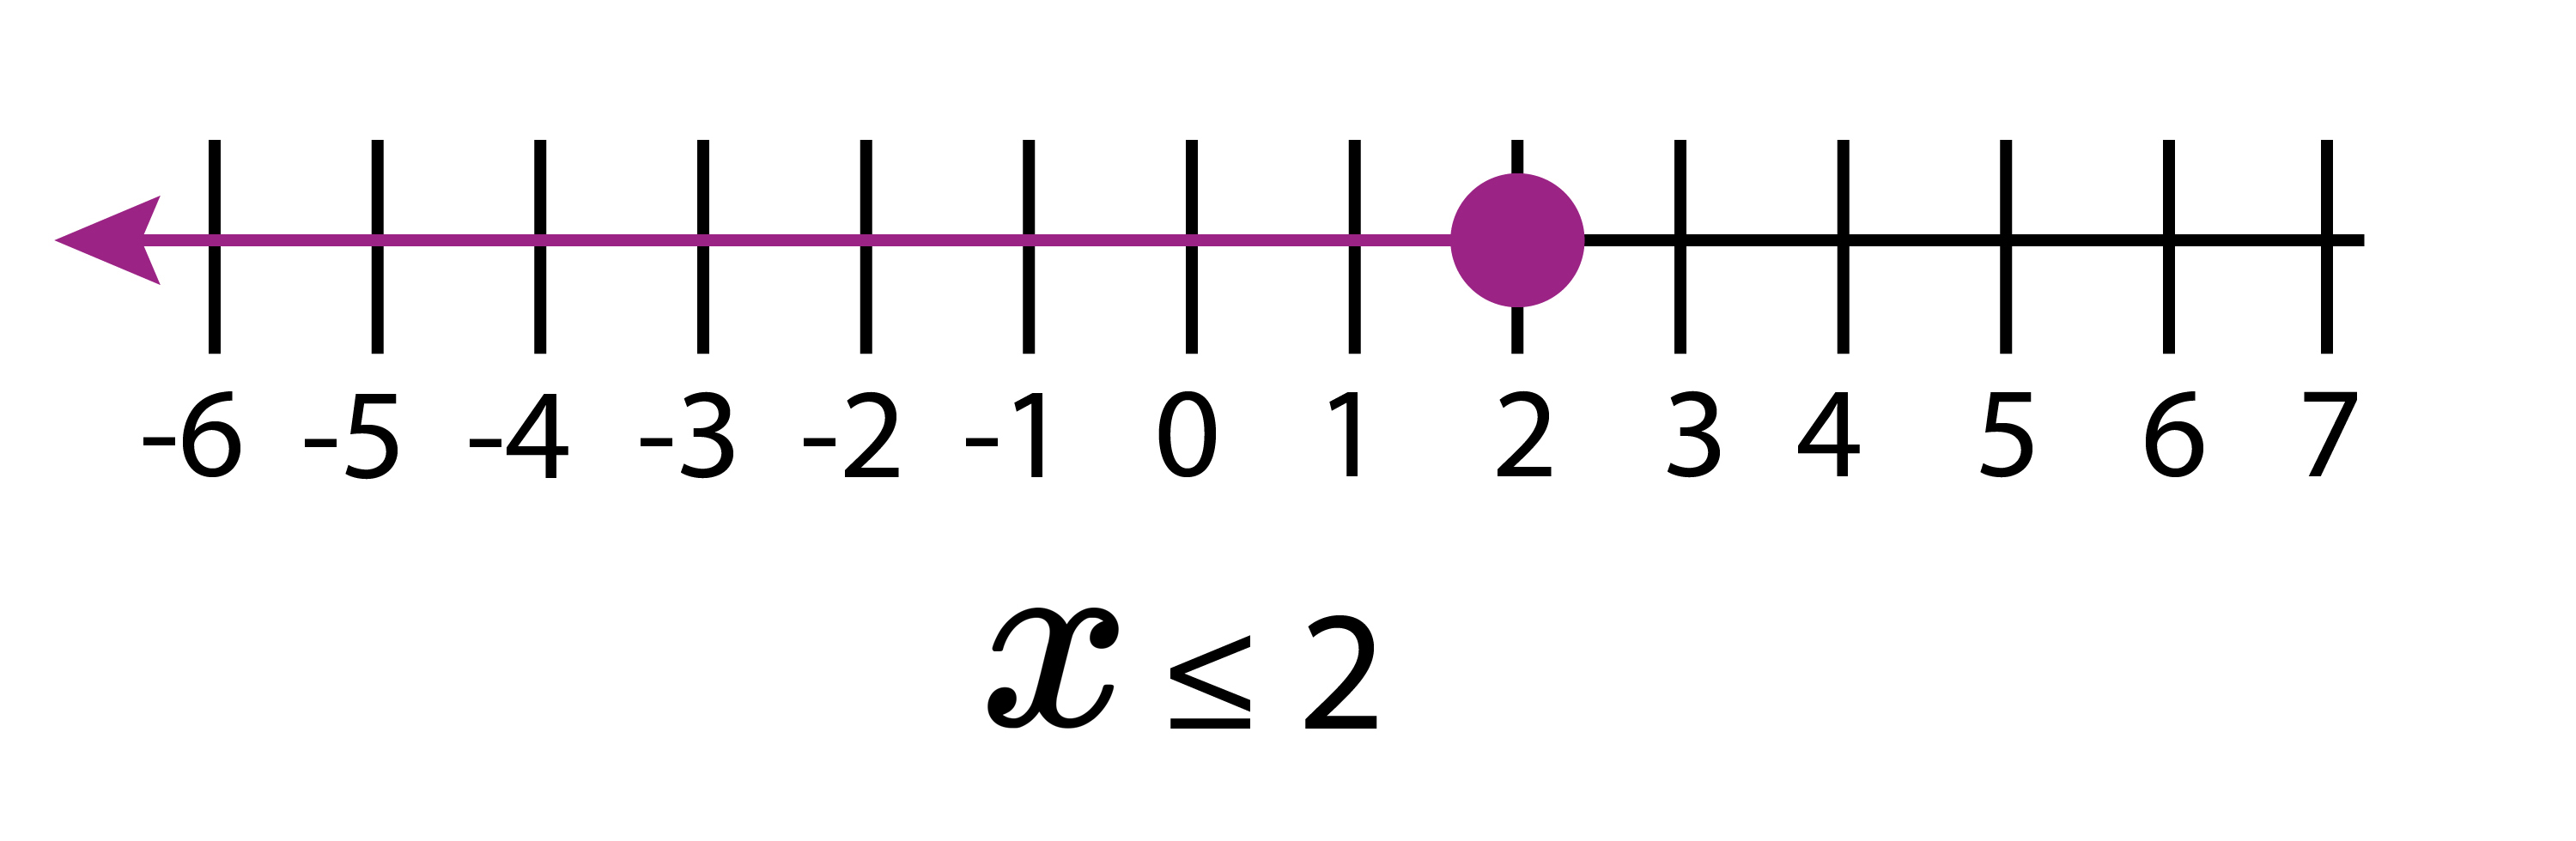 On the number line x is less than or equal to 2